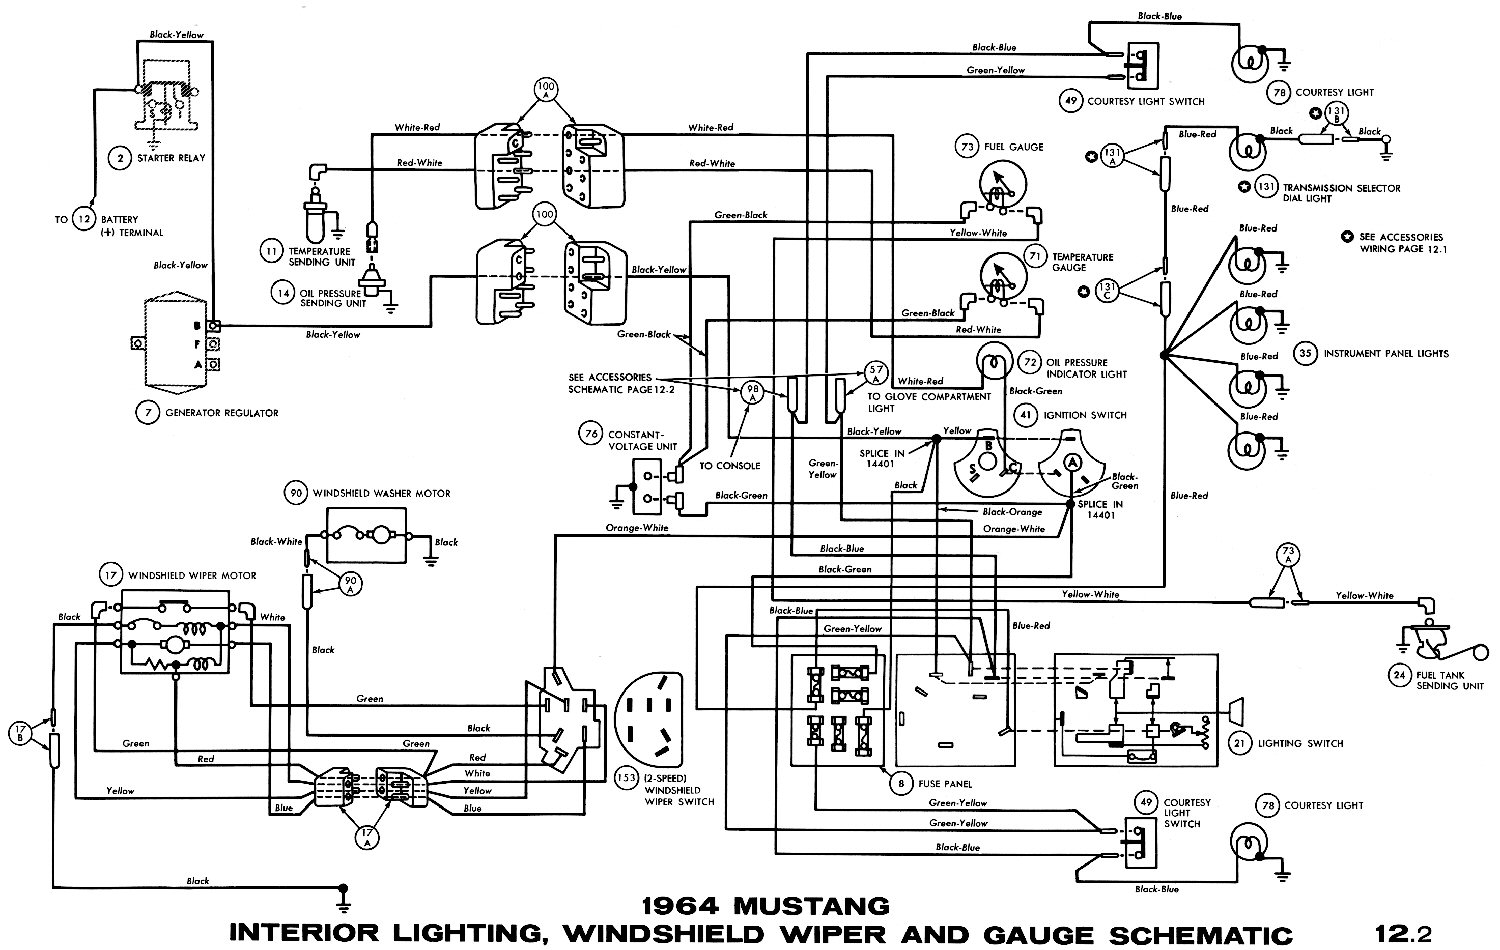 1964k 66 mustang wiring diagram online 65 ford mustang wiring diagram 1965 ford mustang wiring diagrams at panicattacktreatment.co